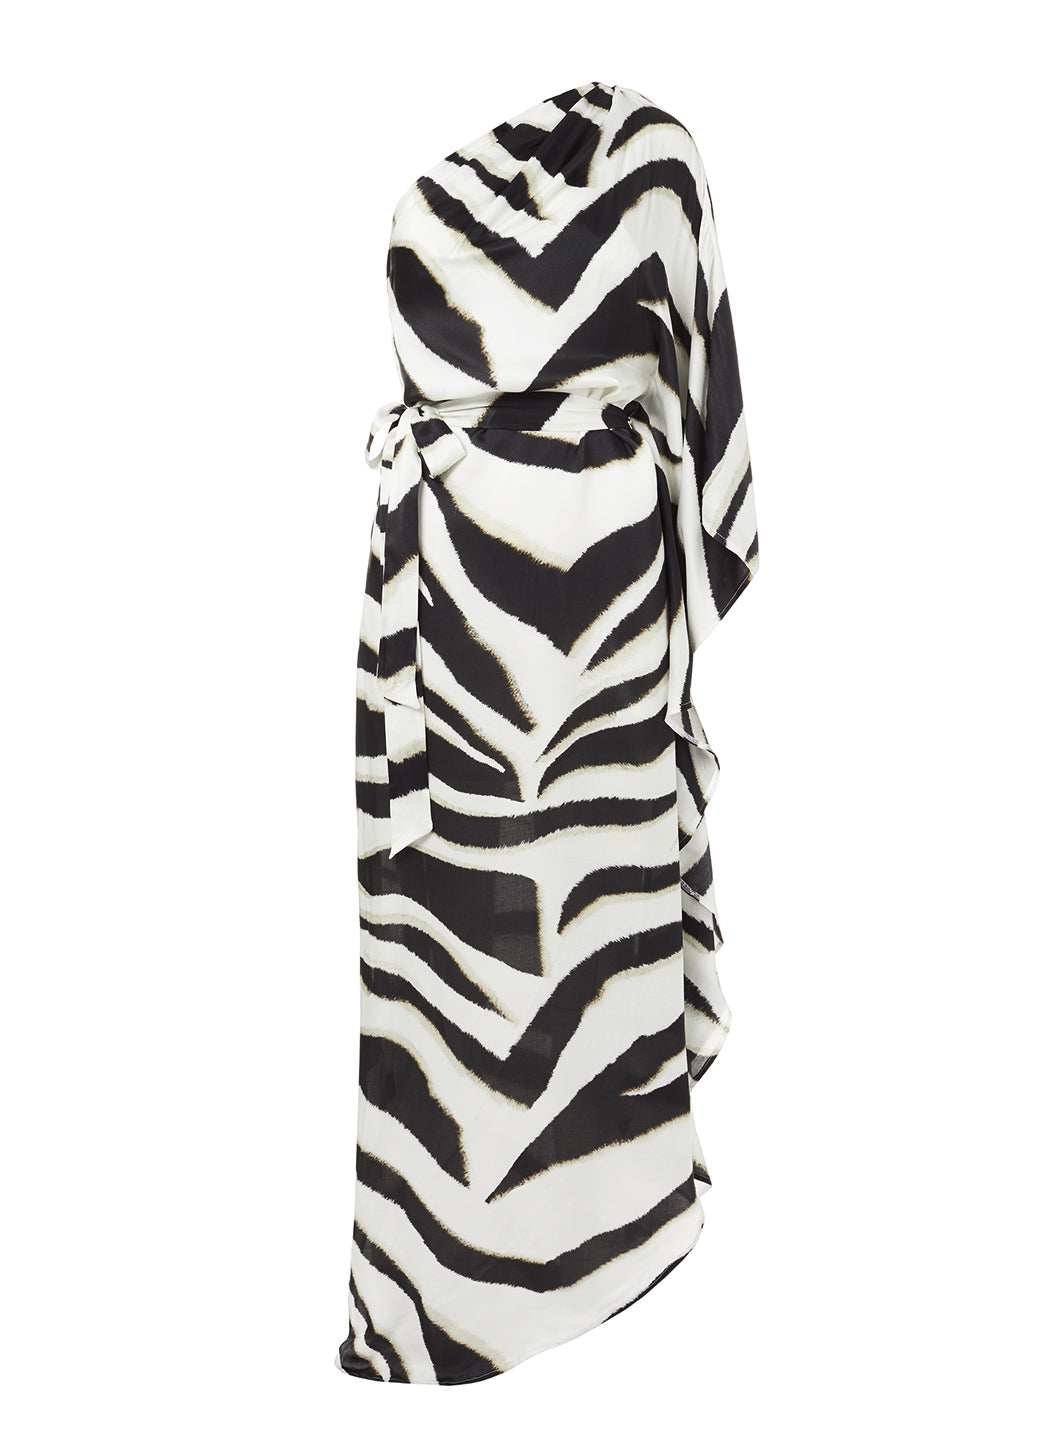 Lauren Zebra One Shoulder Dress - Melissa Odabash Beach Dresses